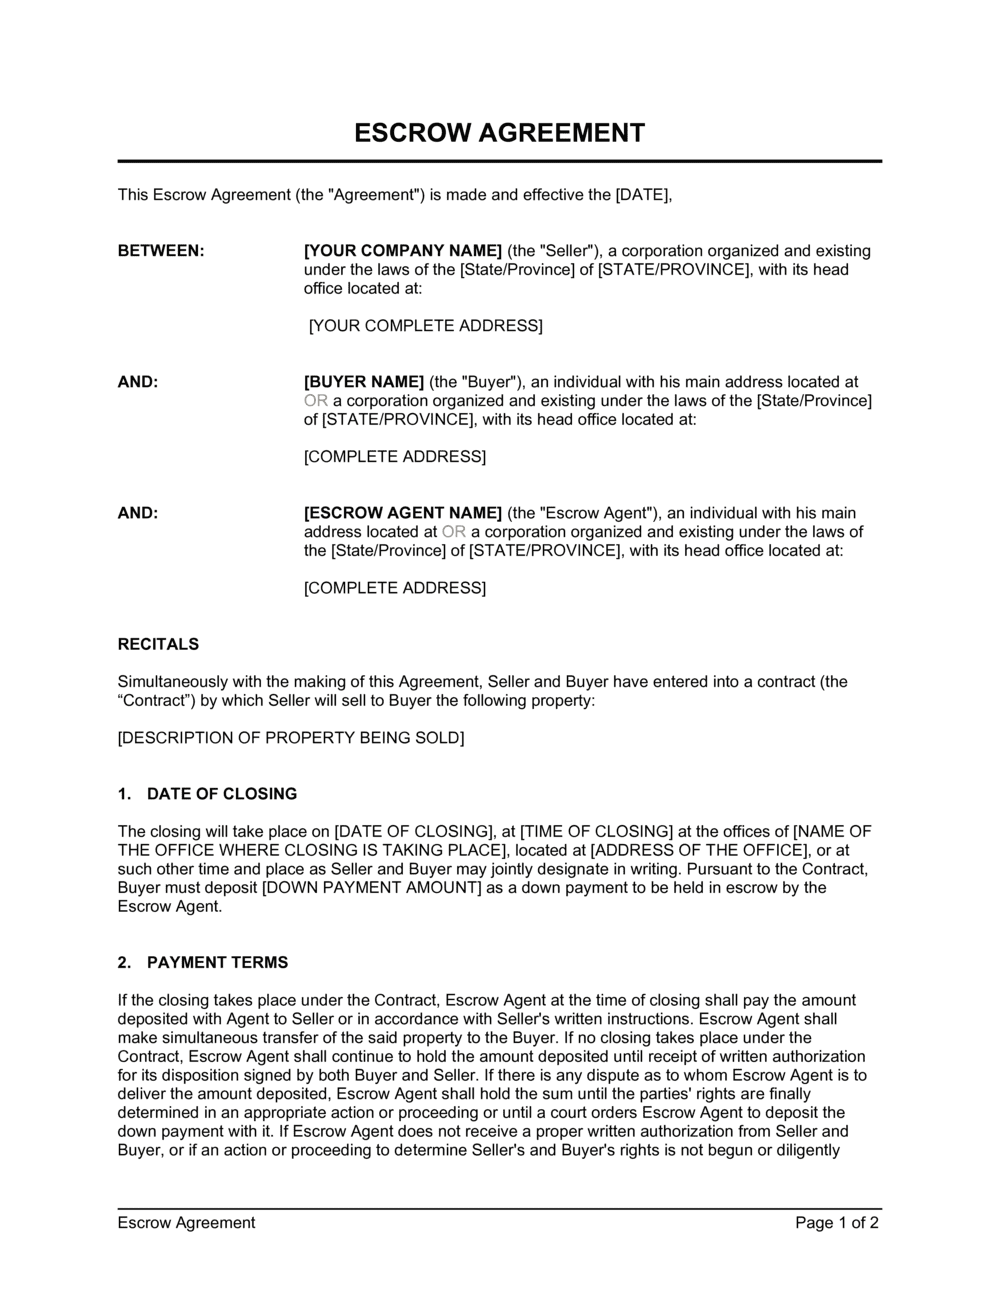 Business-in-a-Box's Escrow Agreement Template